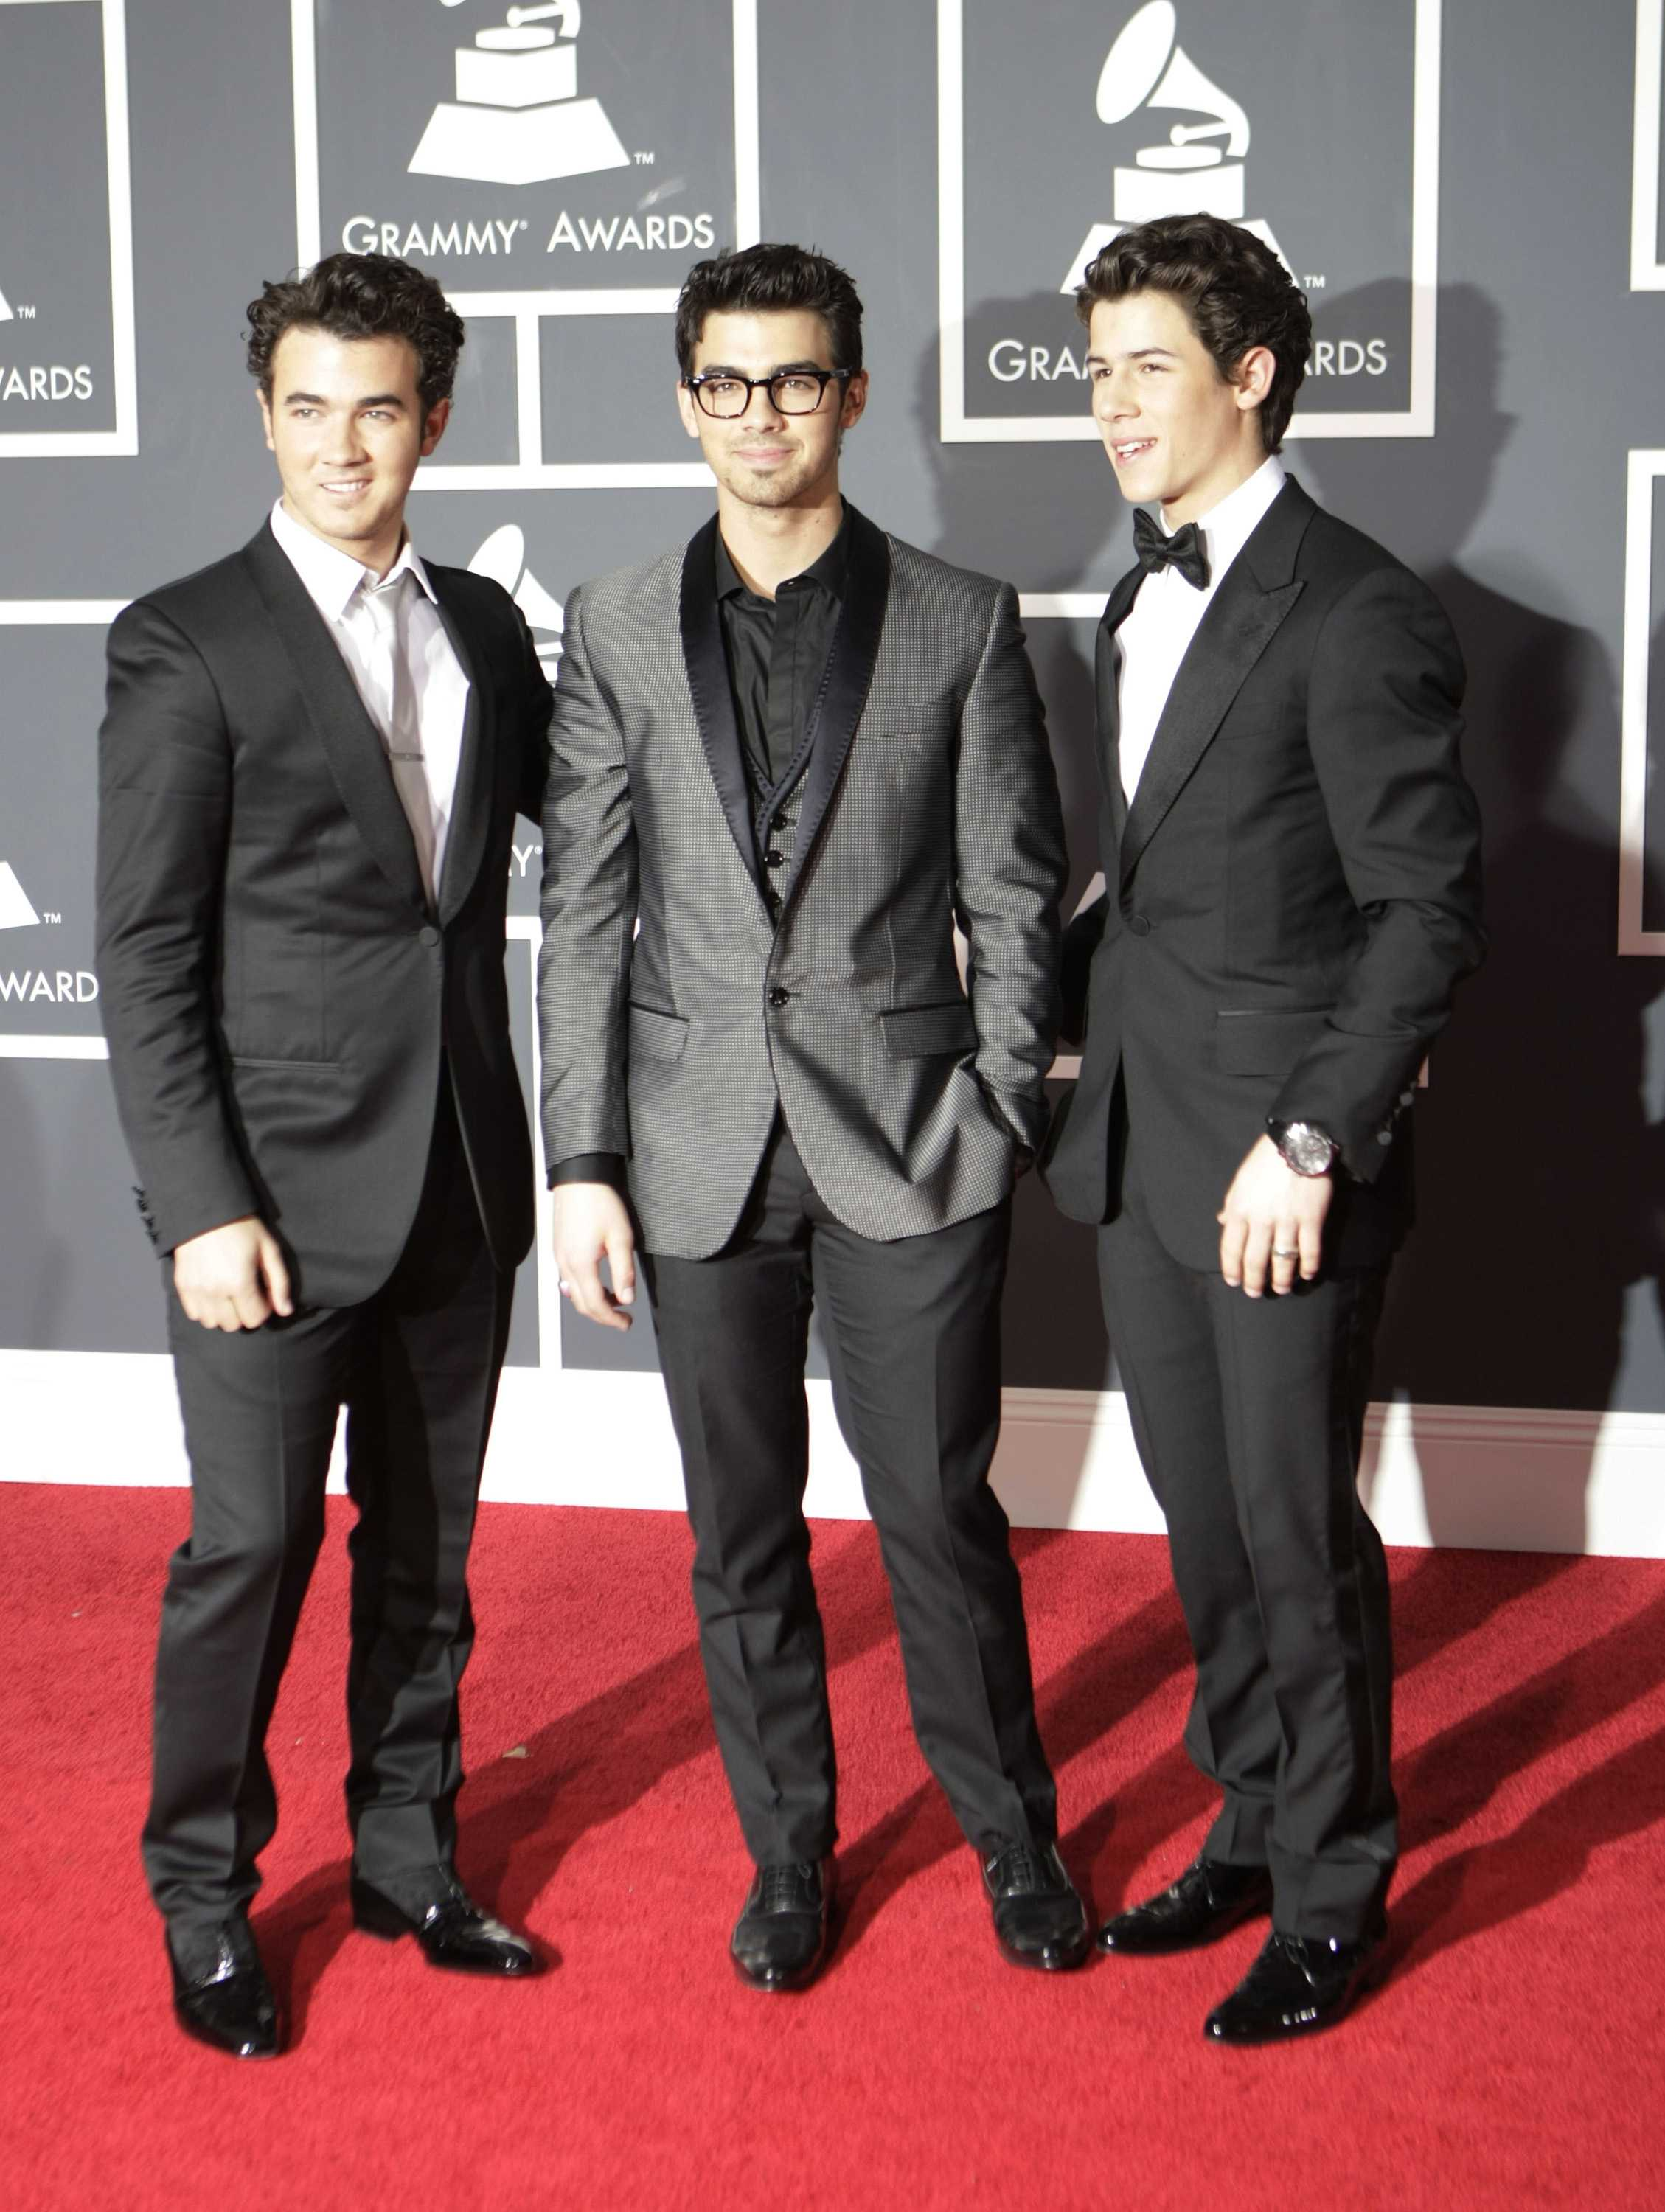 The Jonas Brothers are all smiles in this picture, but rumor has it things have gone downhill. The brothers just announced their world tour will be cancelled.